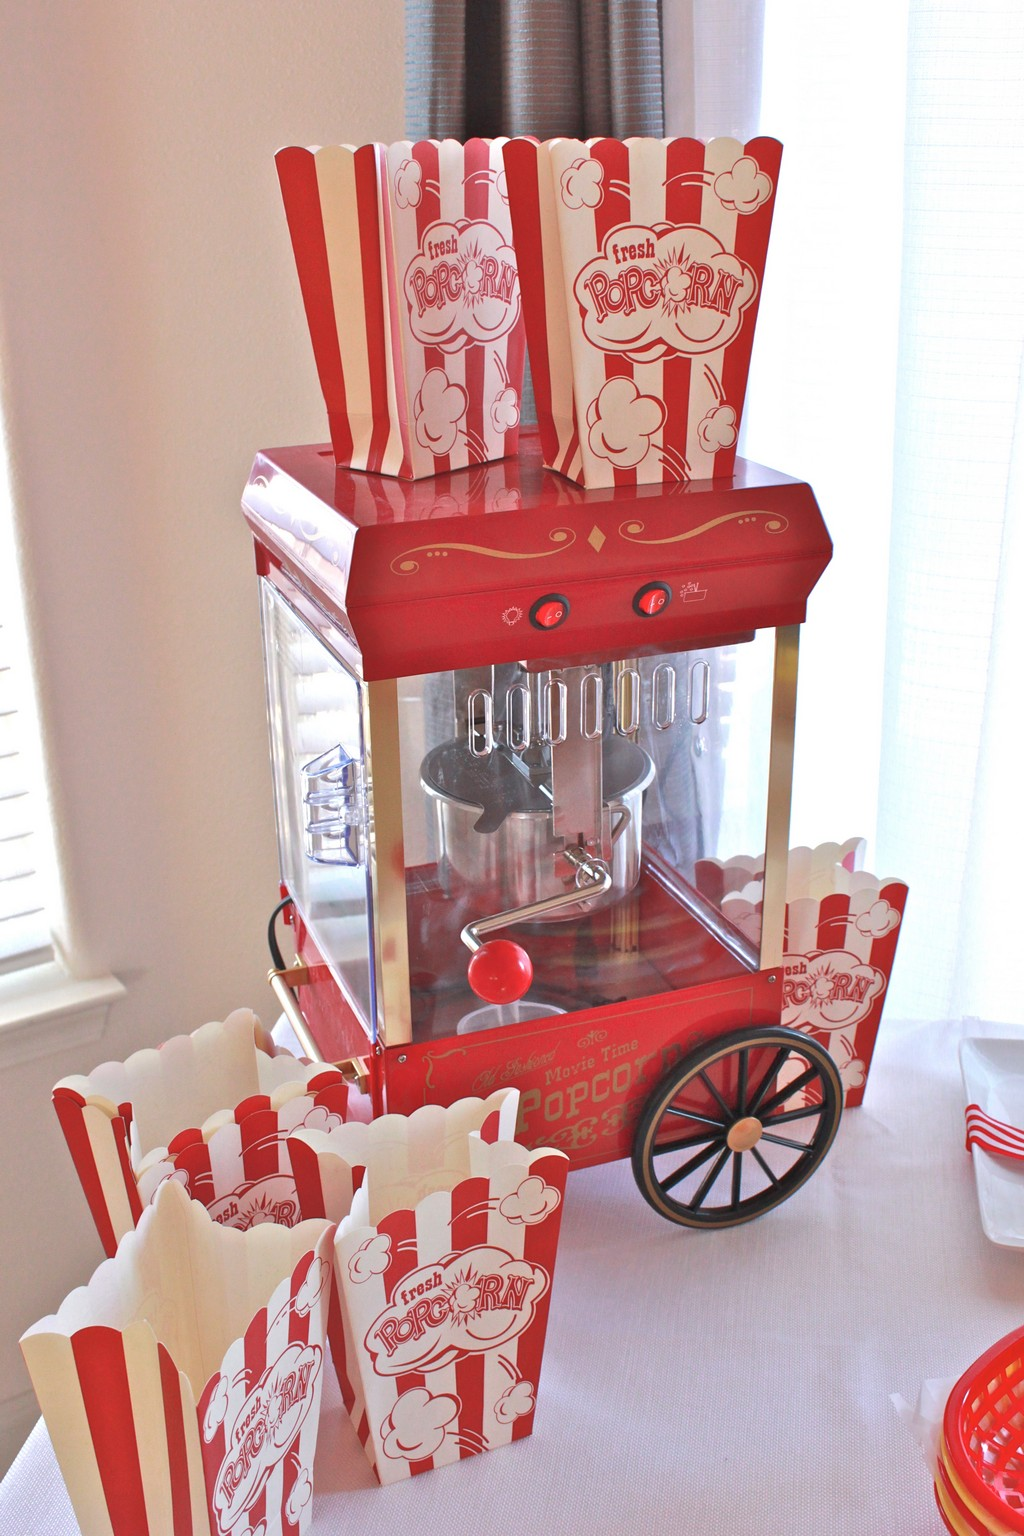 popcorn maker parts, portable popcorn machine, great northern popcorn popper